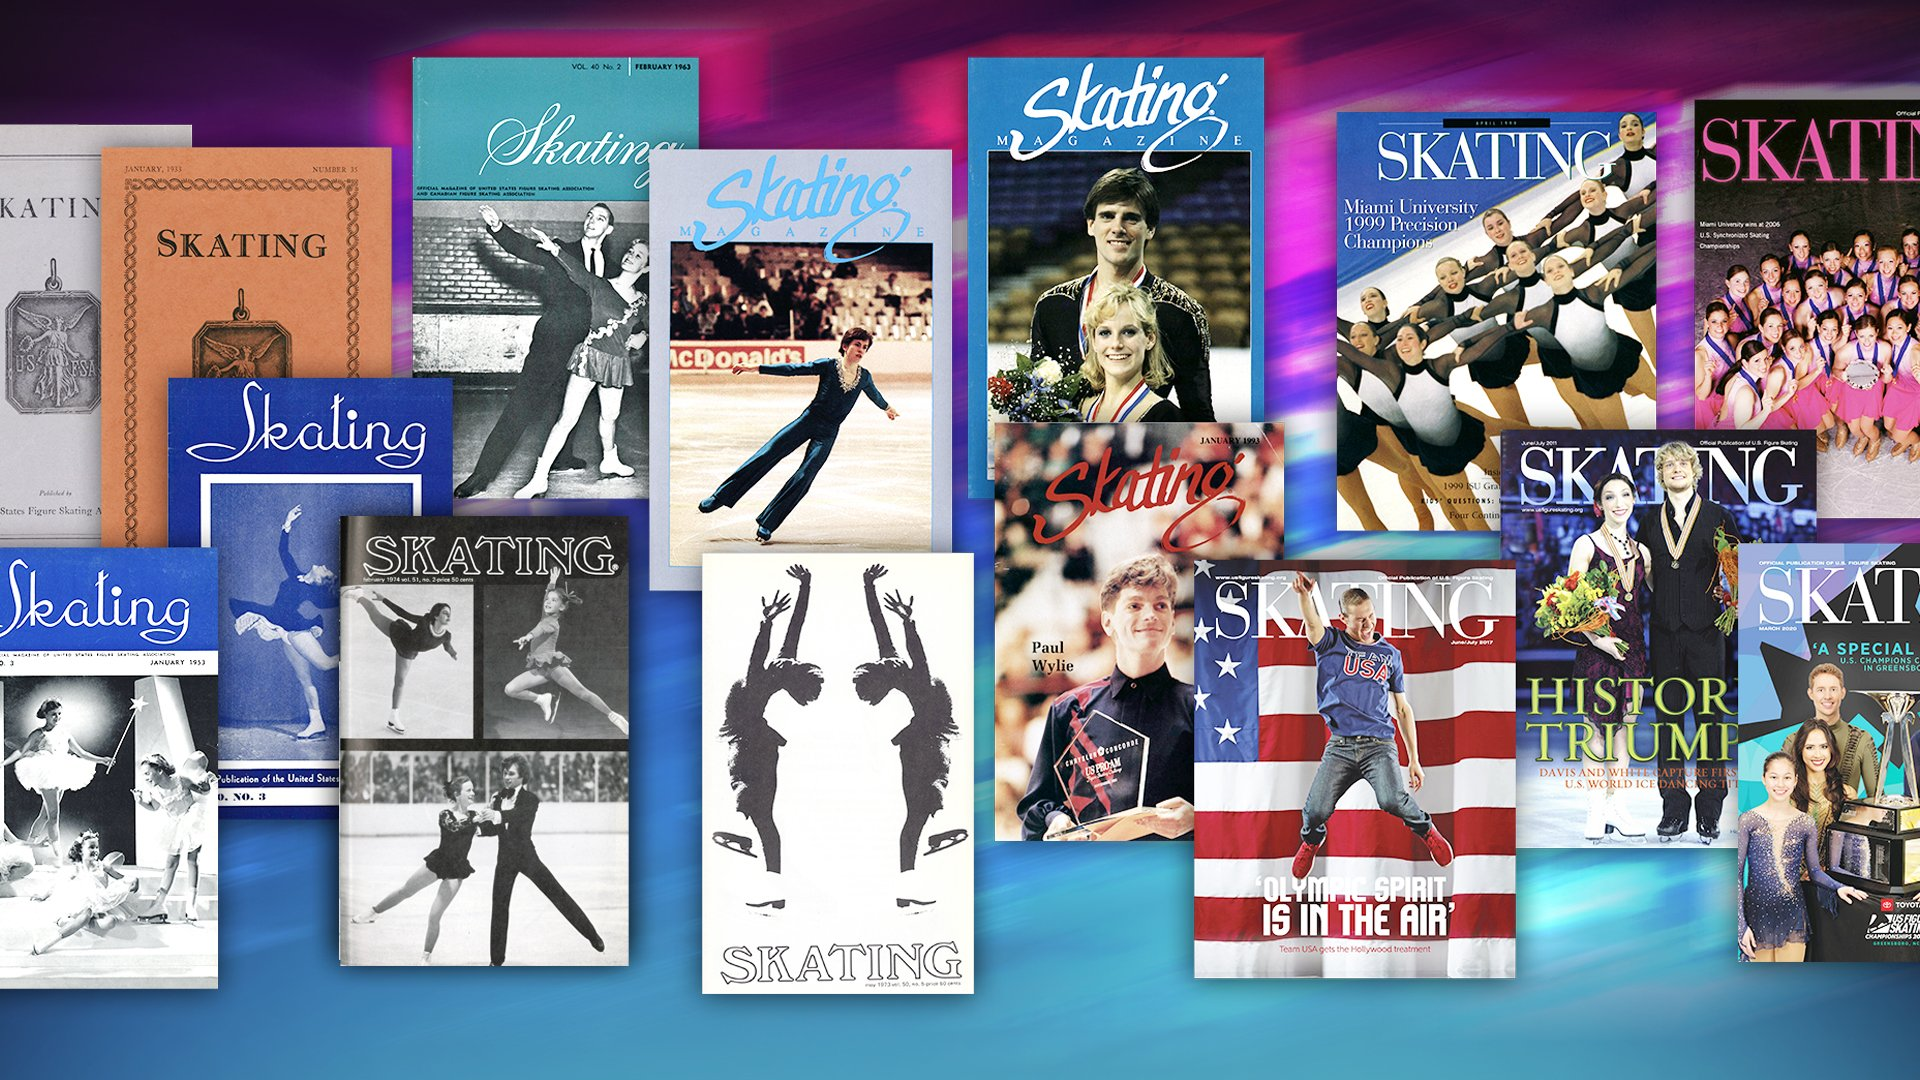 SKATING Magazine covers from past years